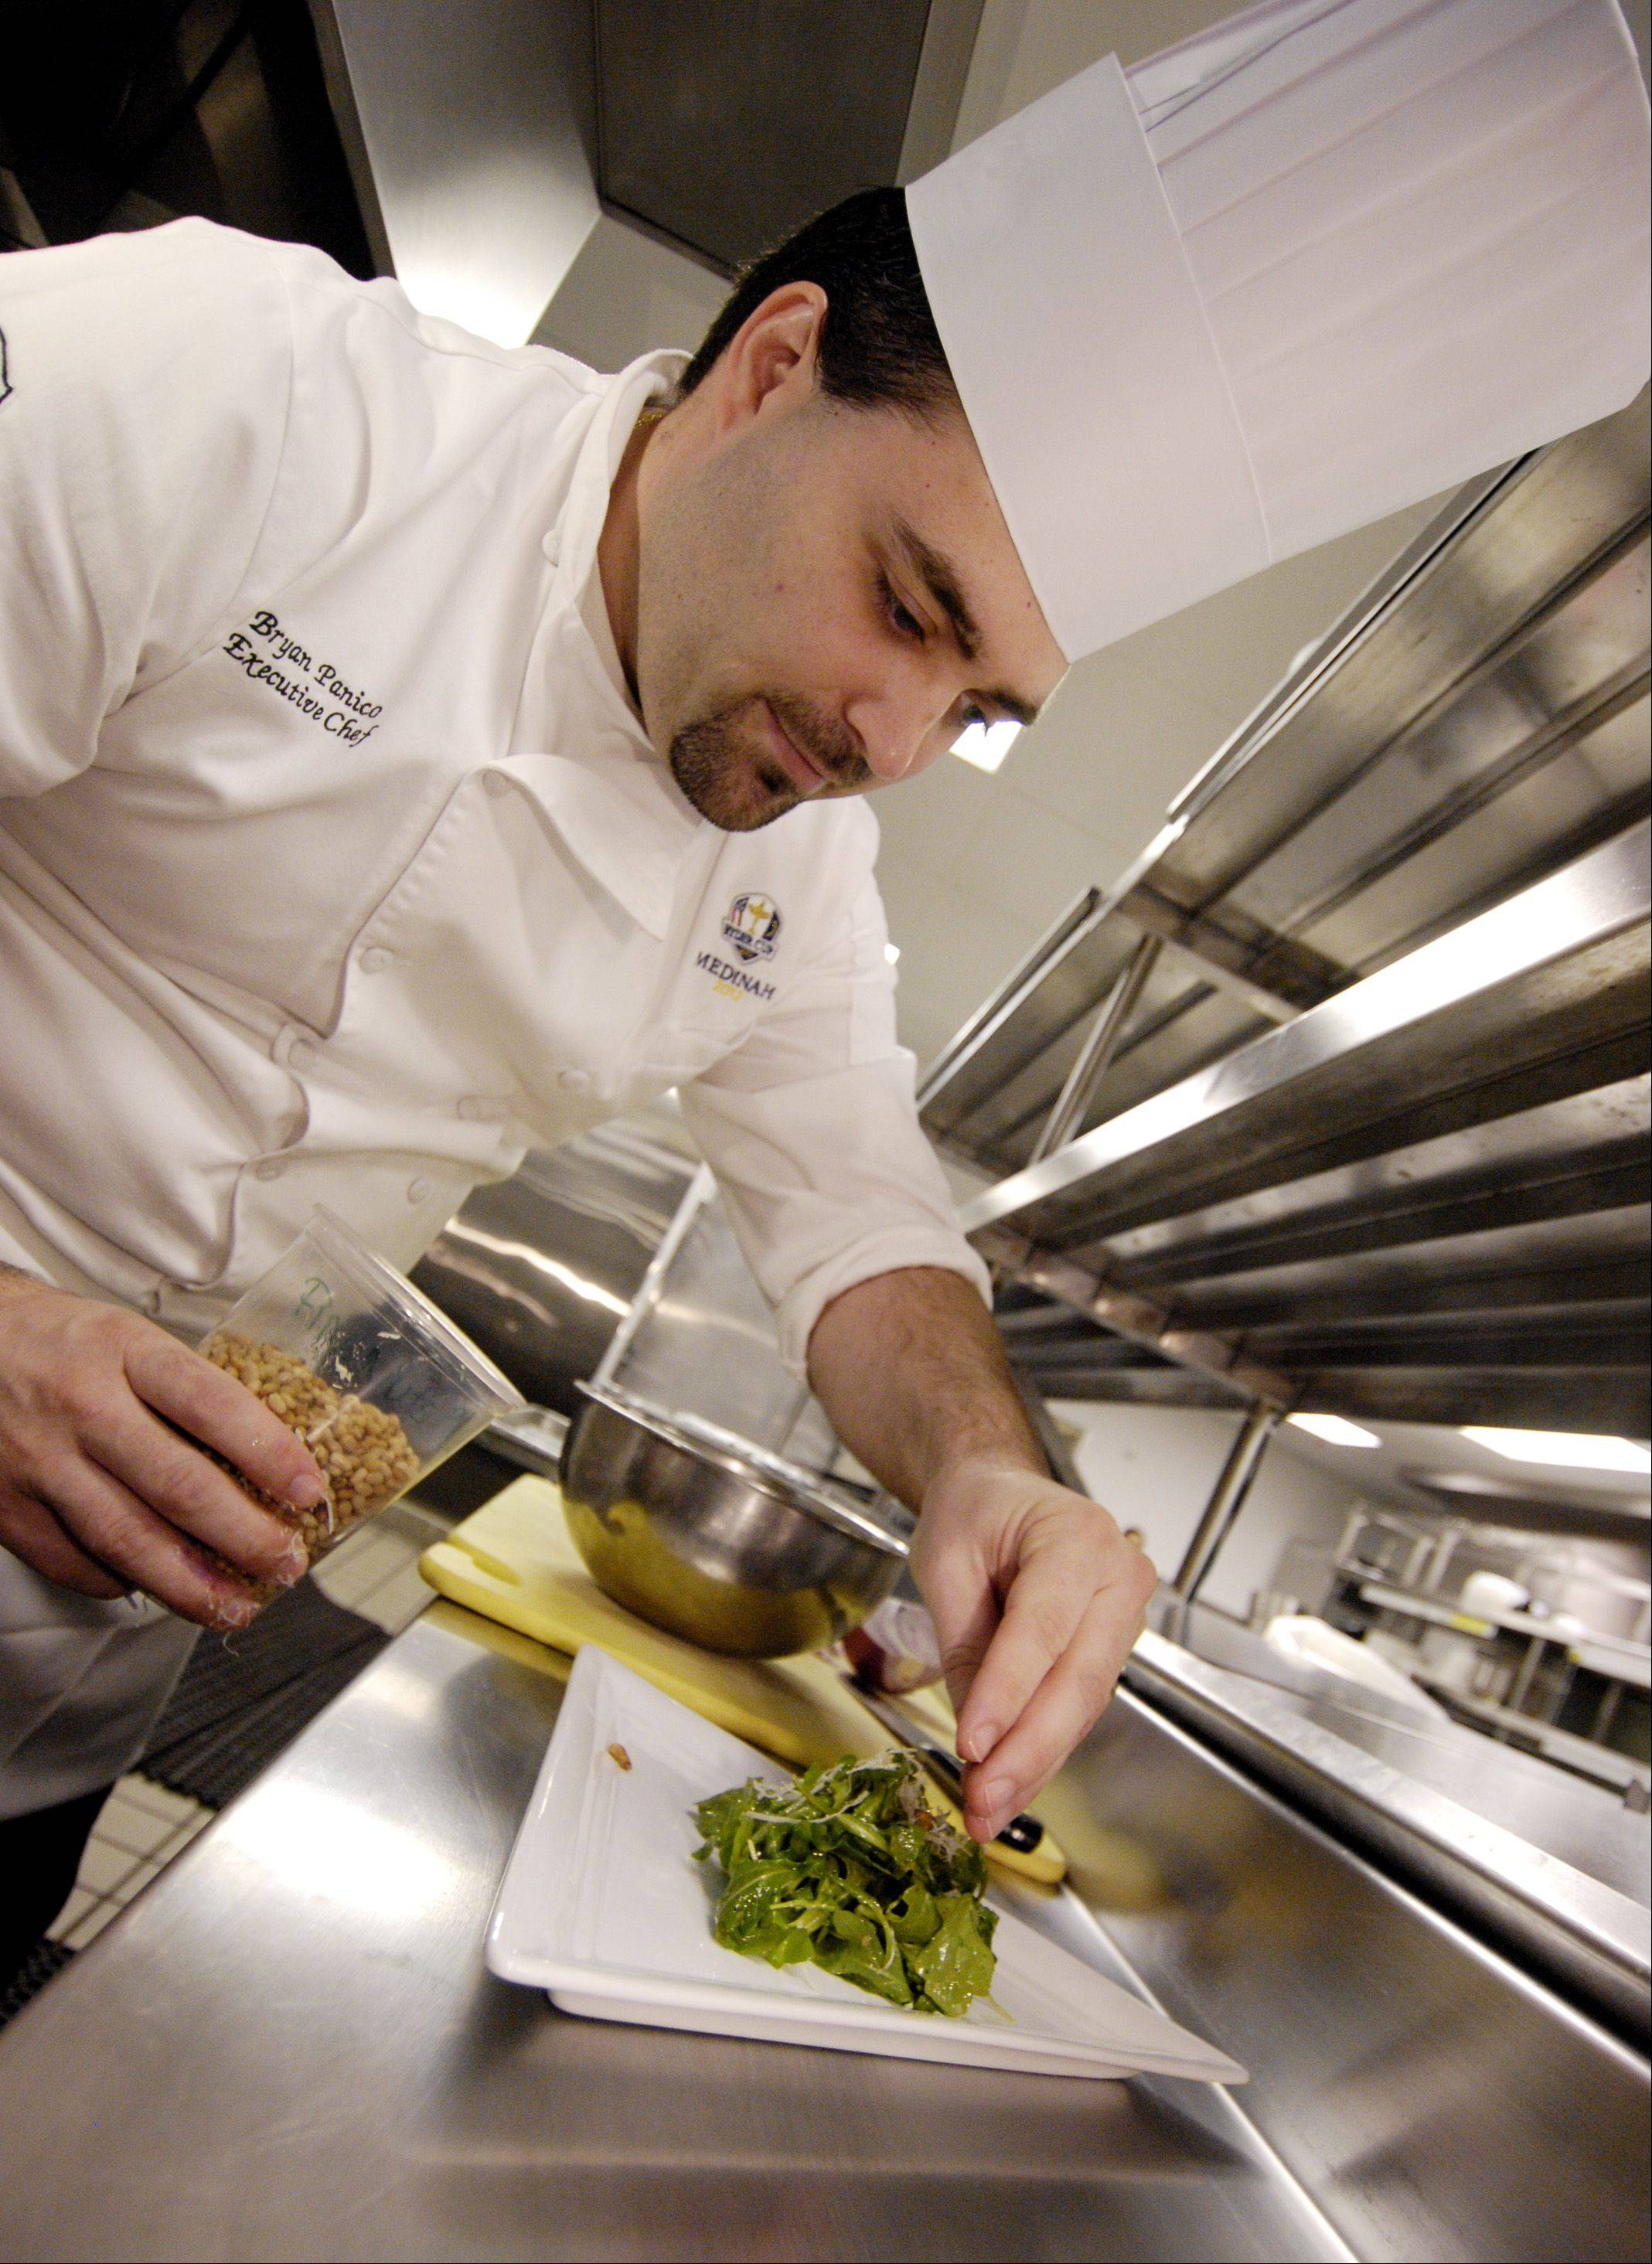 Medinah Country Club Executive Chef Bryan Panico prepares an arugula salad to serve alongside his pastry-wrapped pork and apple sausage.